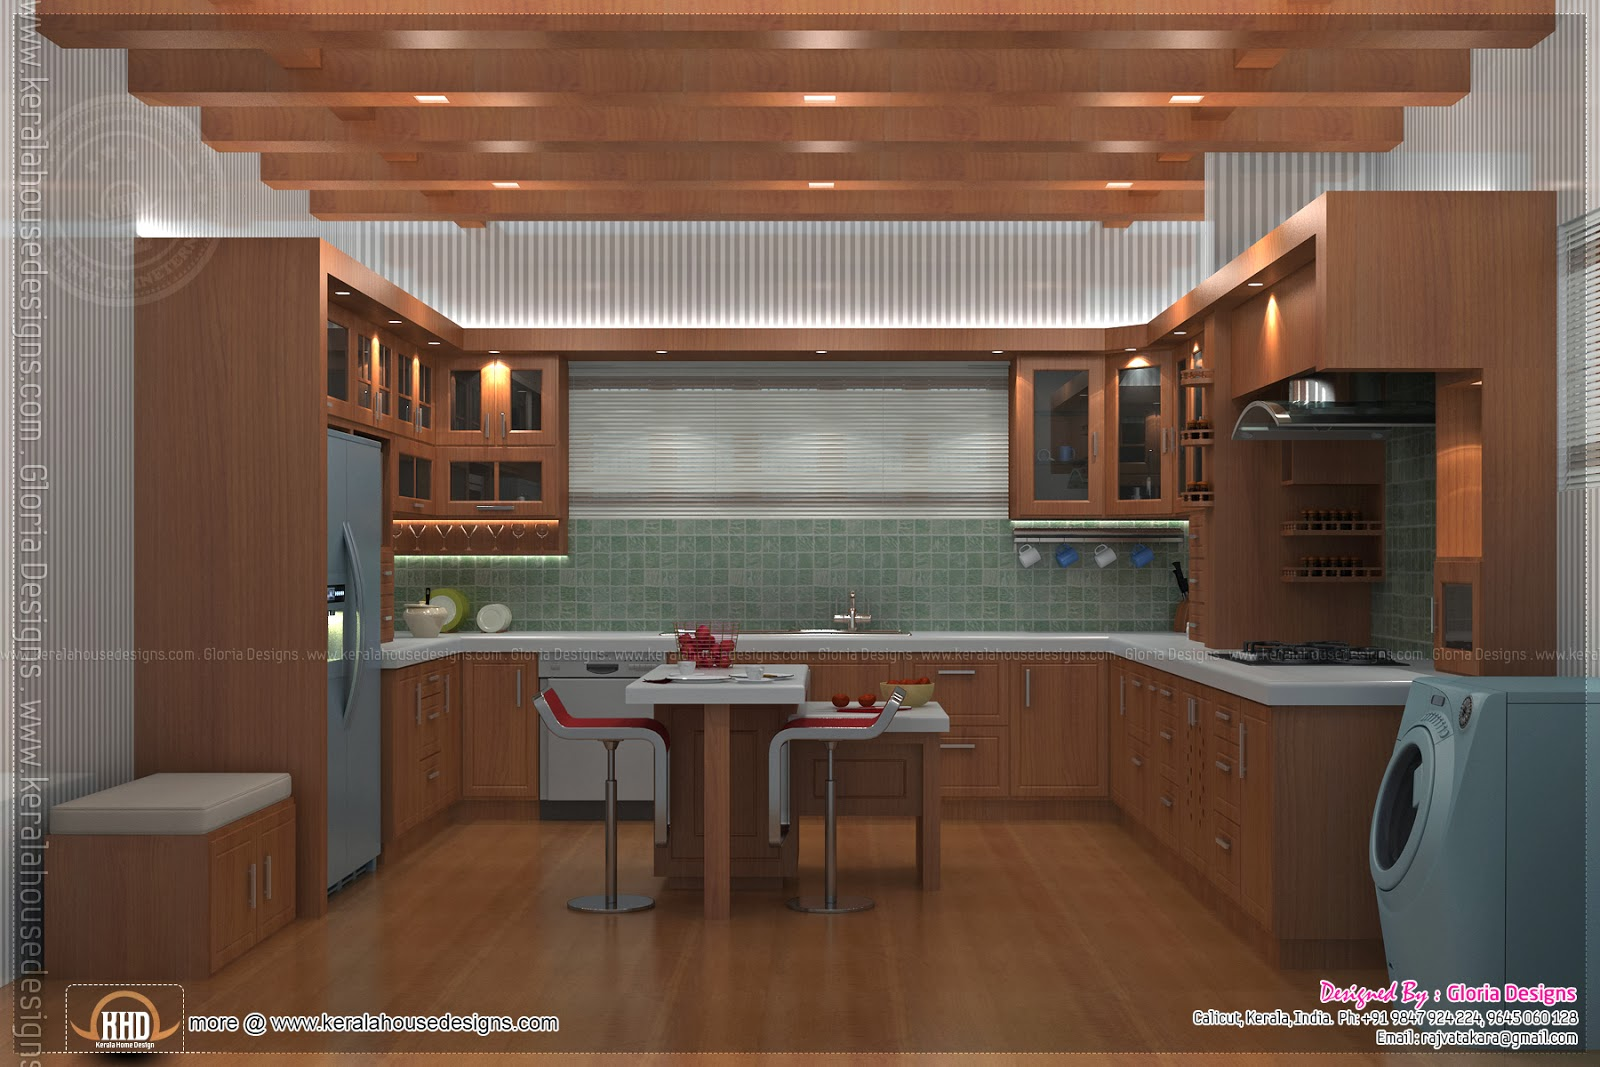 Kitchen Interior Design: Home Interior Designs By Gloria Designs, Calicut